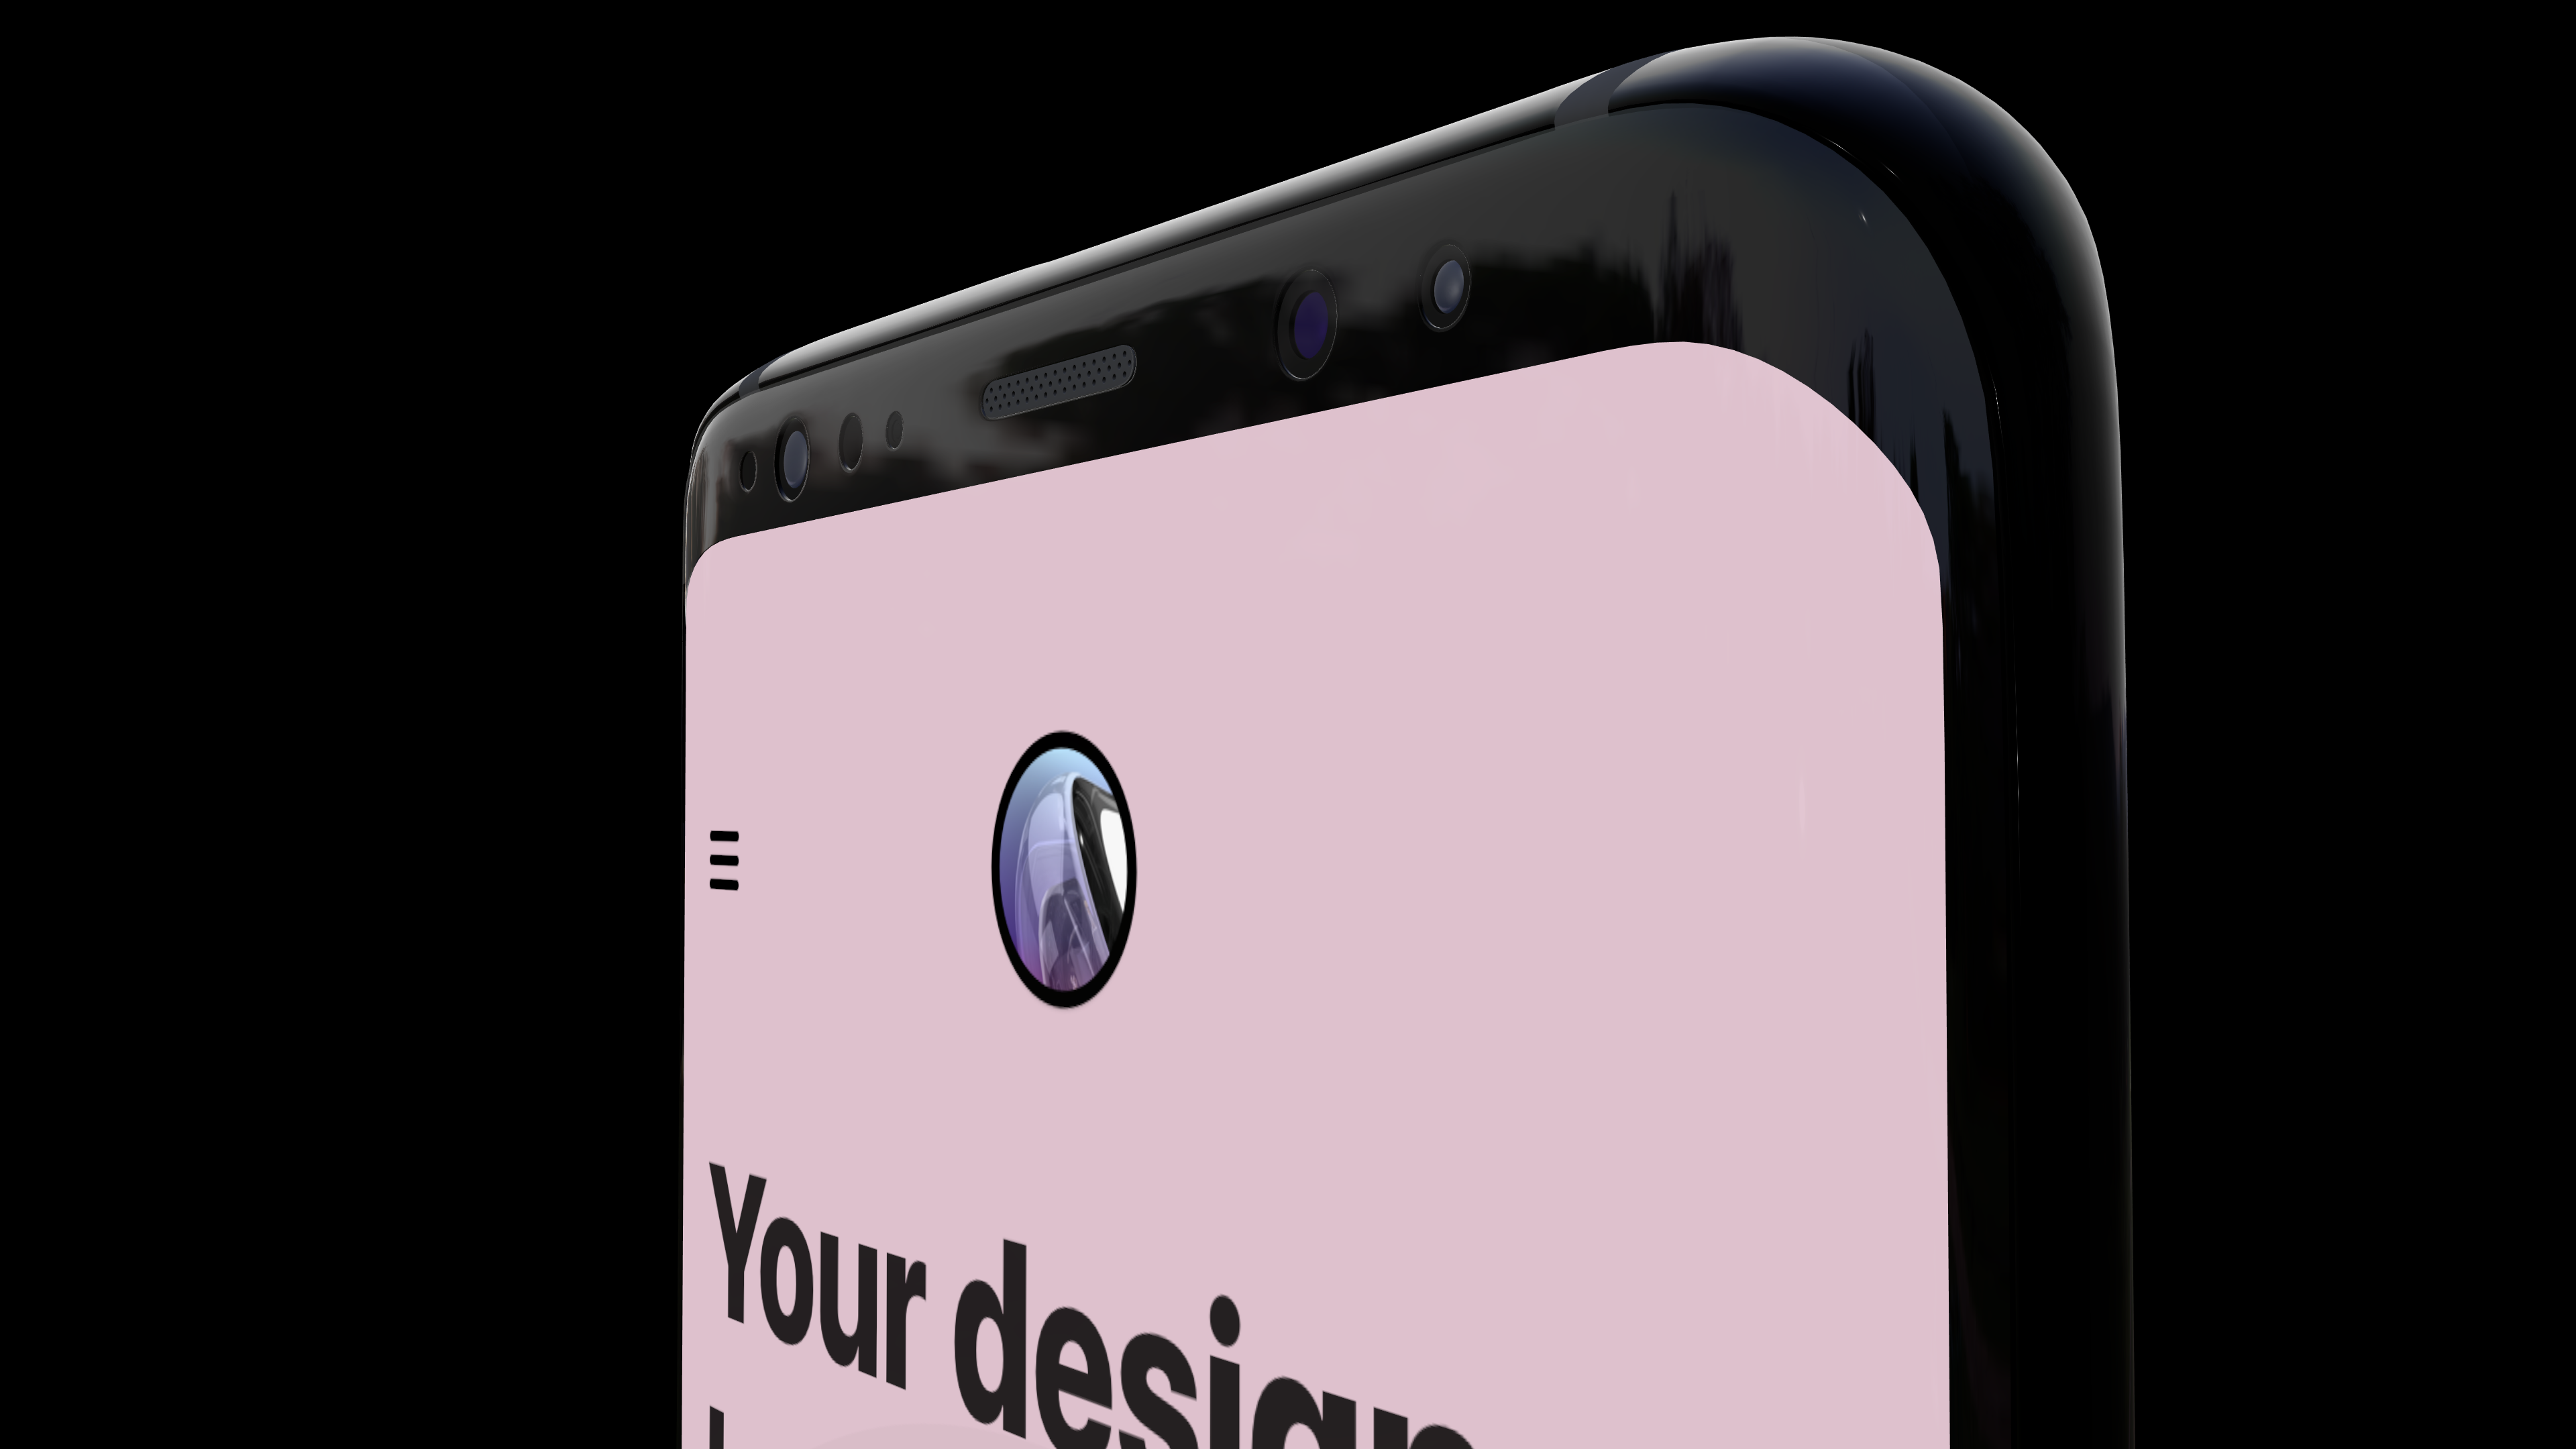 An Android phone mockup rotated and seen from the side